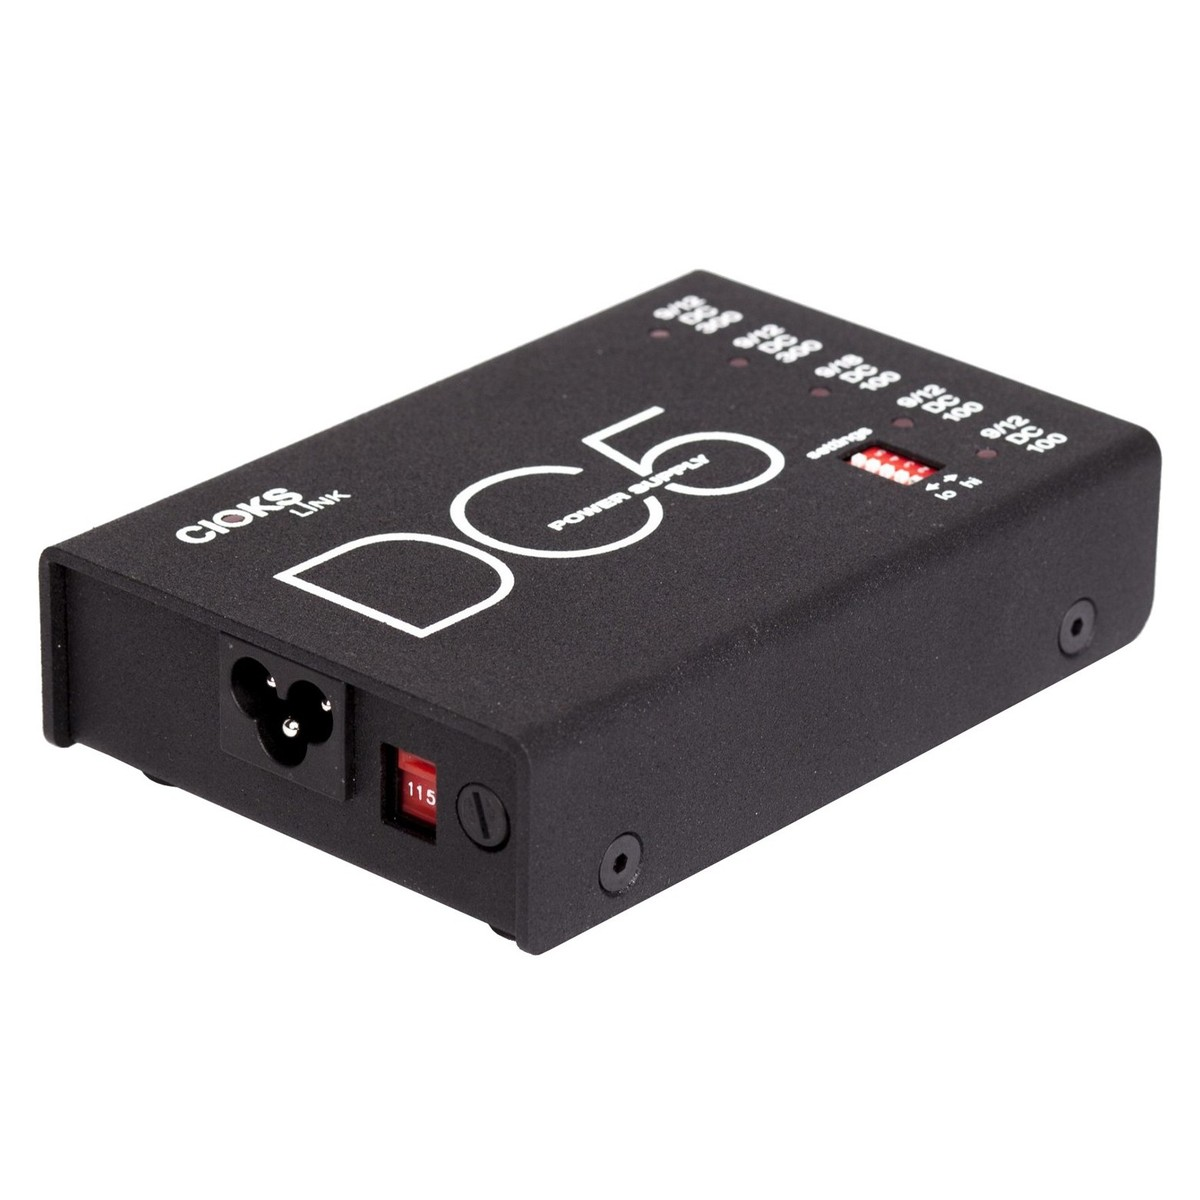 Cioks Dc5 Link Power Supply At Gear4music 22w Amplifier For 12v Systems Psu Loading Zoom